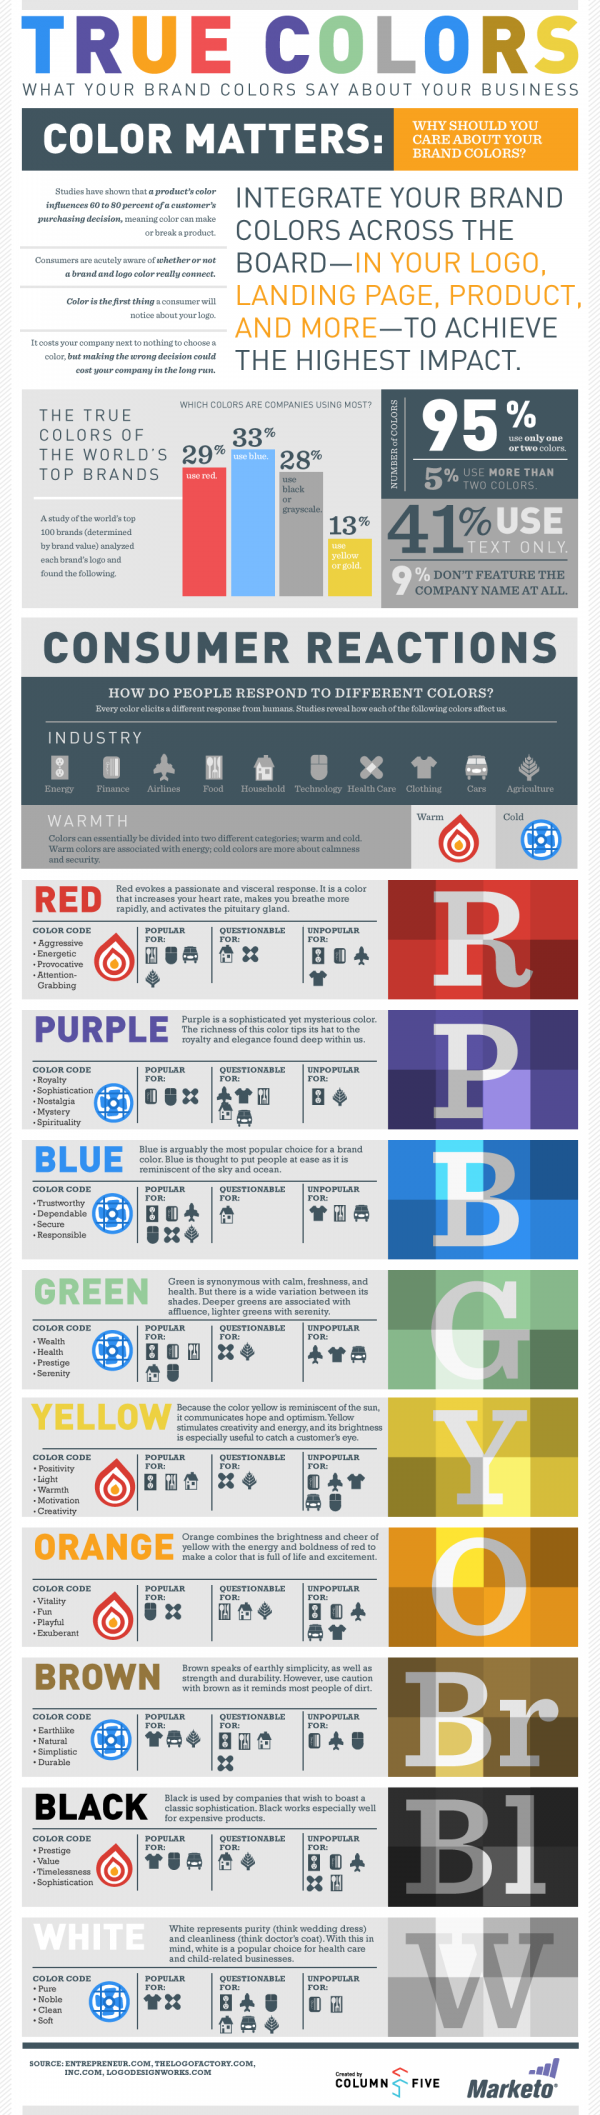 True Colors: What Brand Colors Say About Your Business